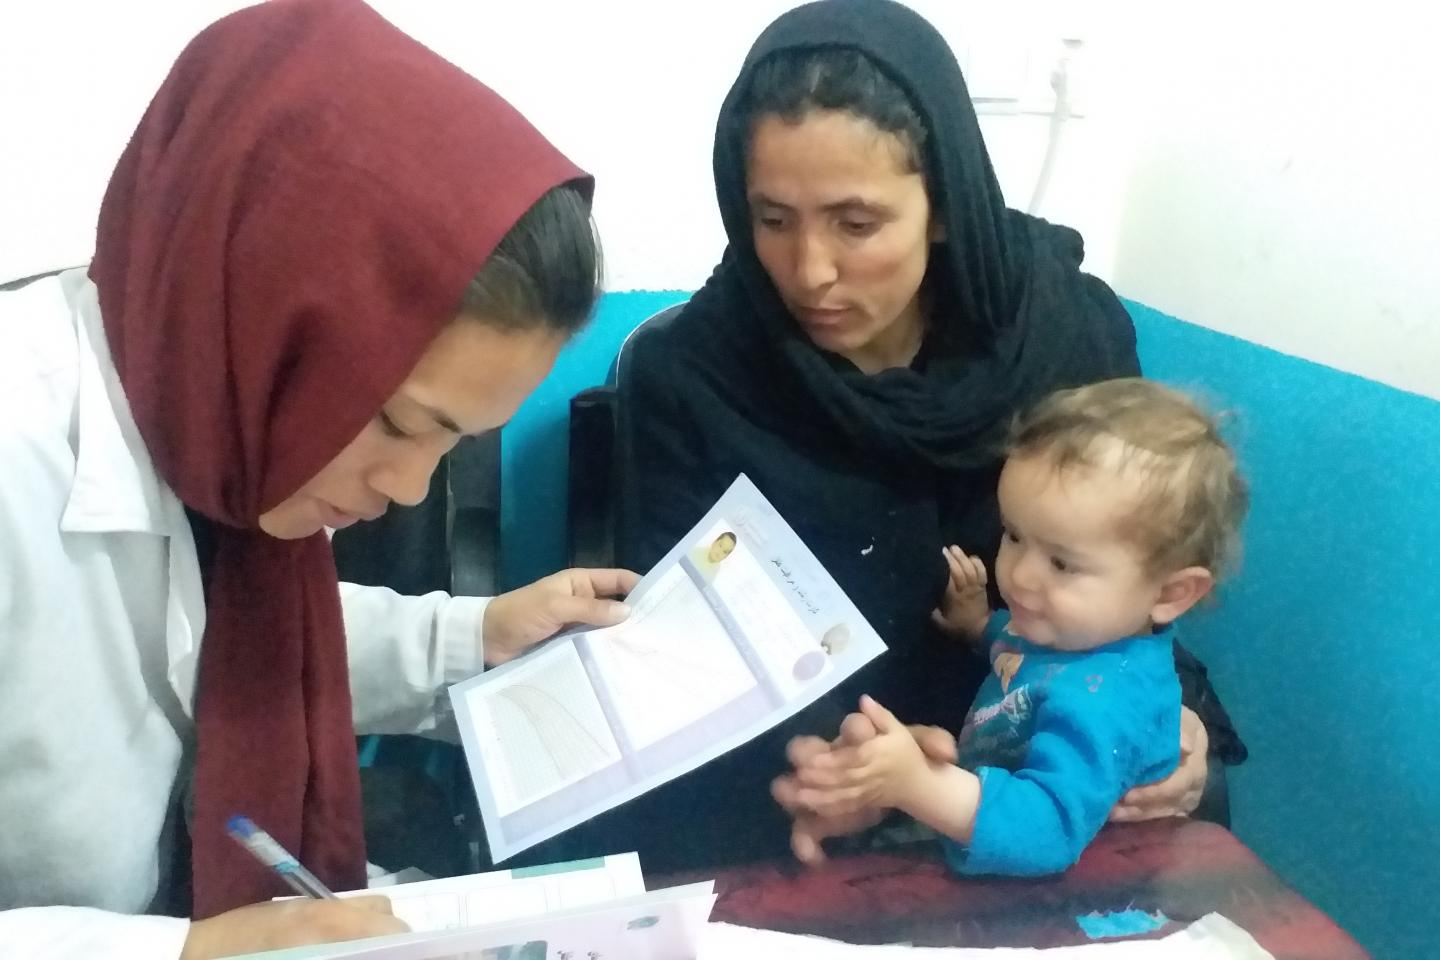 Simple but effective tools in saving lives of children | UNICEF Afghanistan